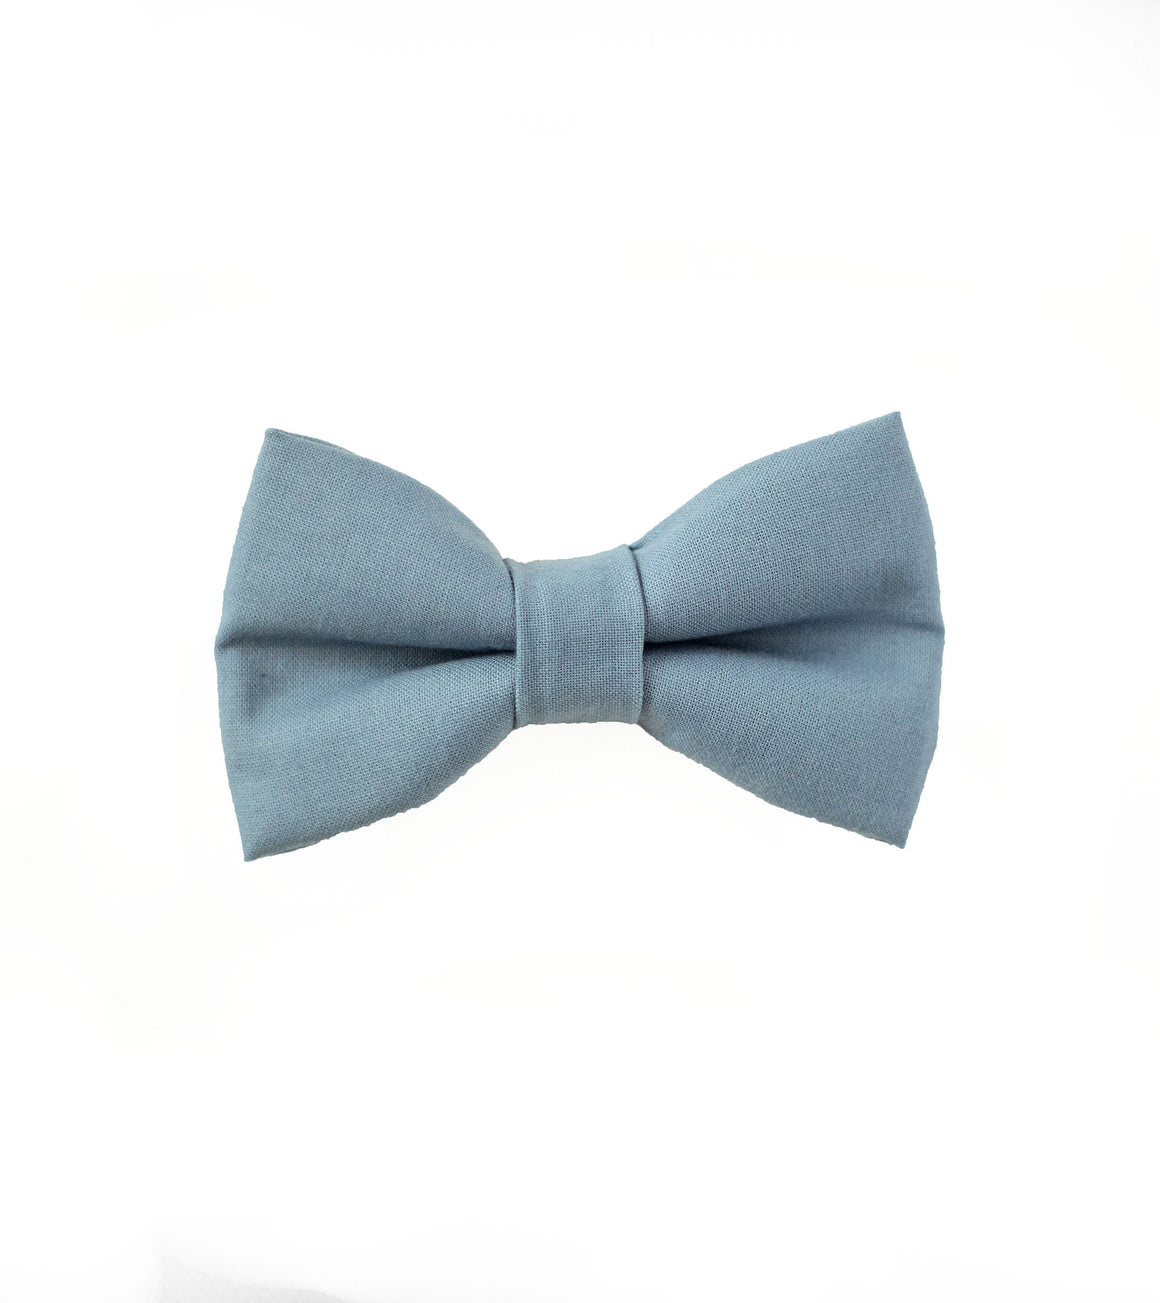 Dusty Blue Bow Tie - Newborn to Adult sizes